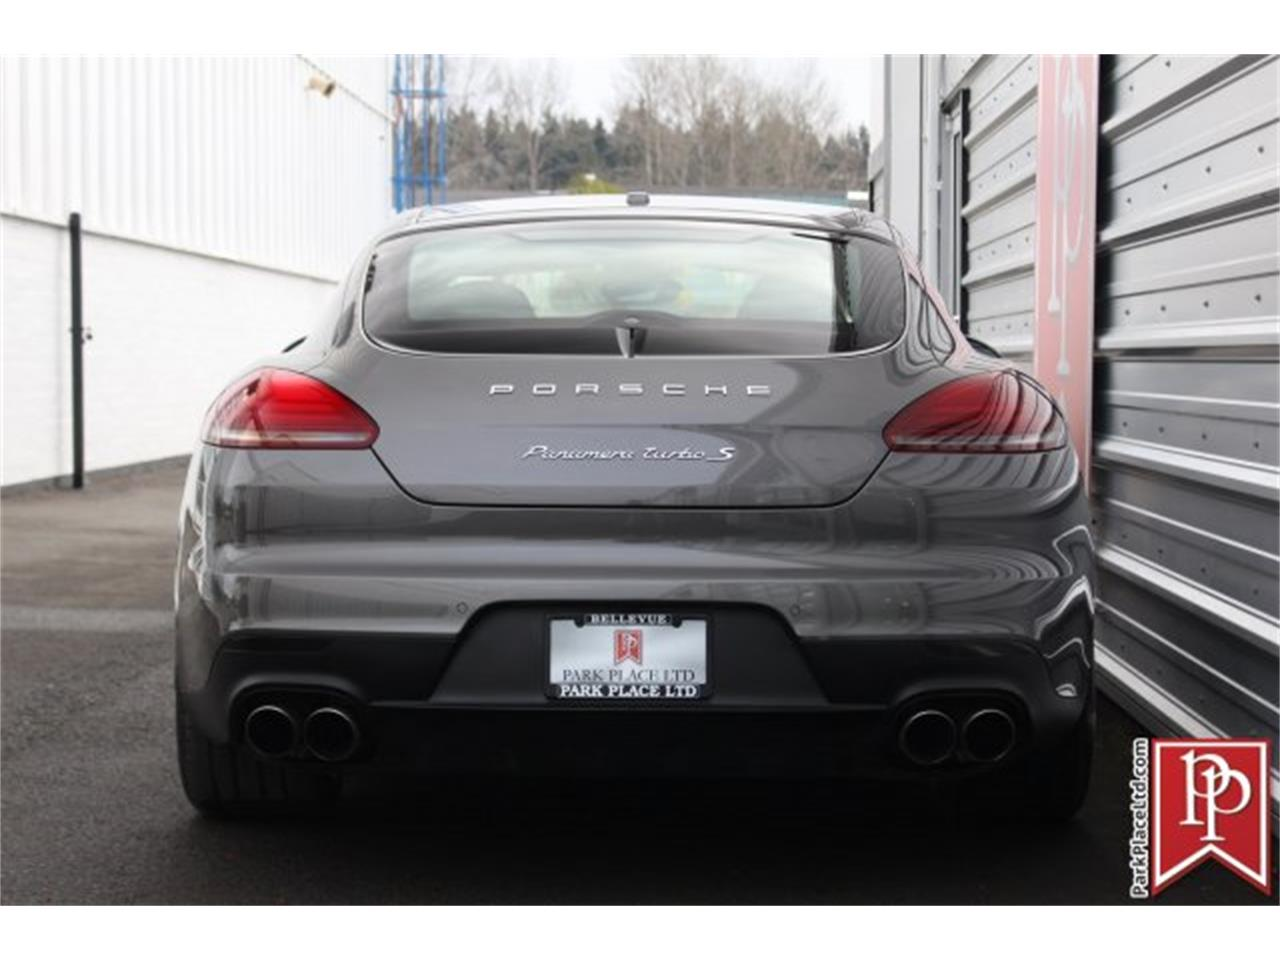 2014 Porsche Panamera for sale in Bellevue, WA – photo 6